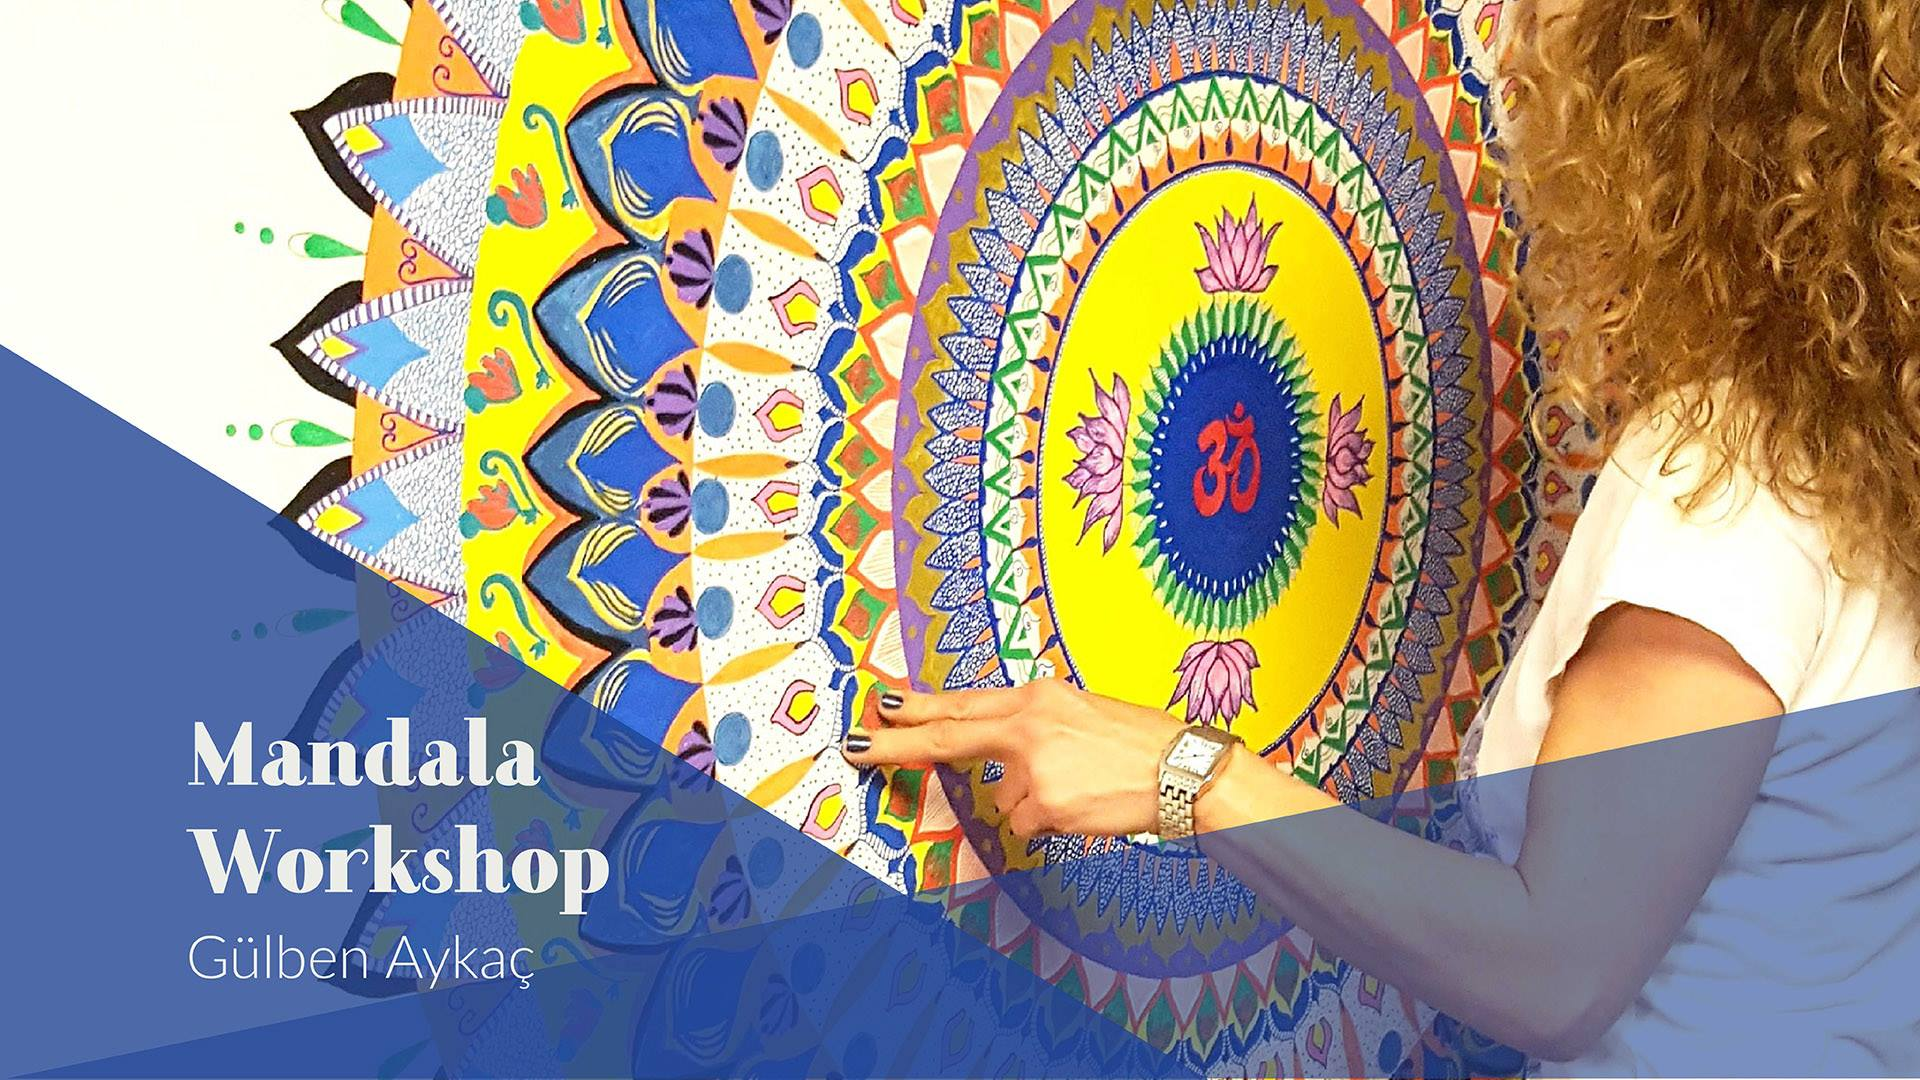 Mandala Workshop